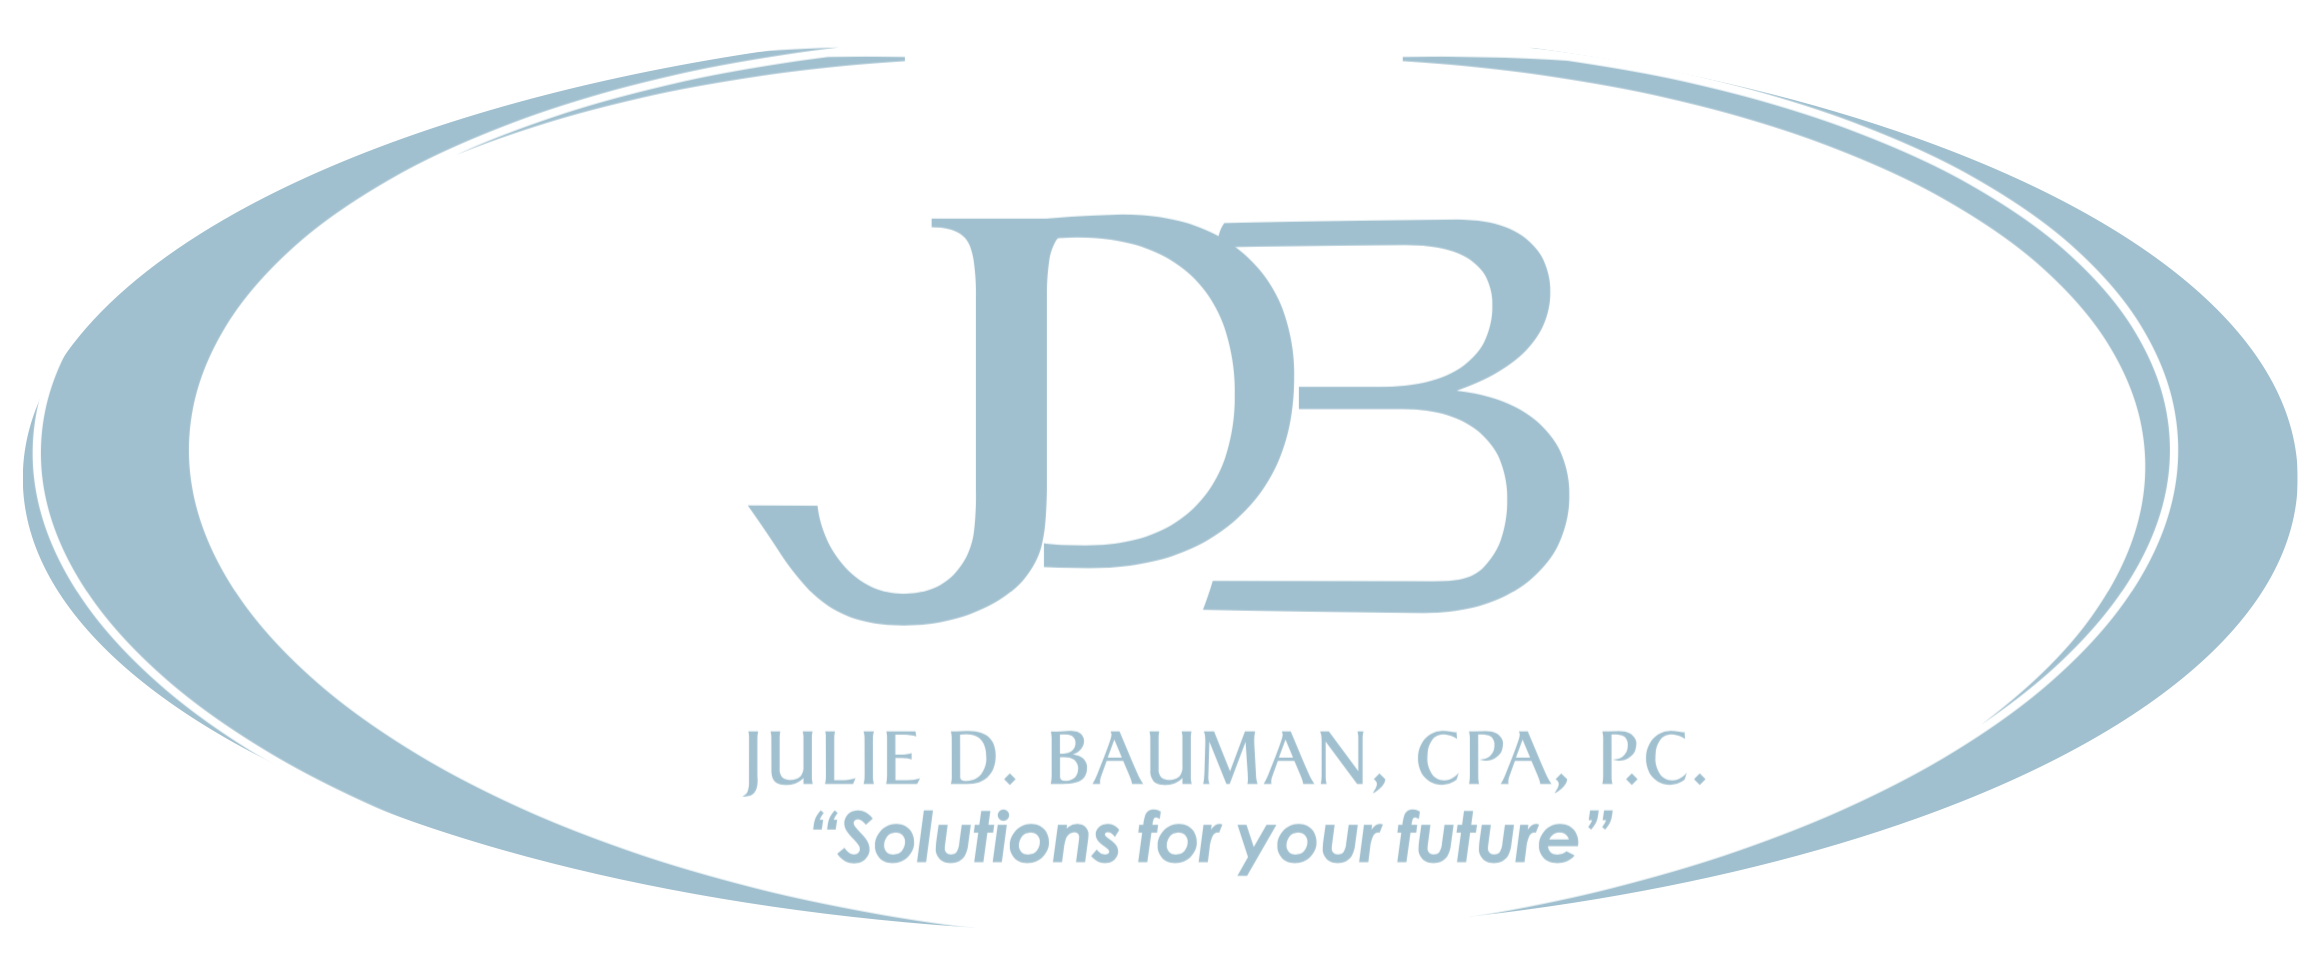 Virtual Accounting Firm | Tax Center Page | Julie D. Bauman, CPA, PC